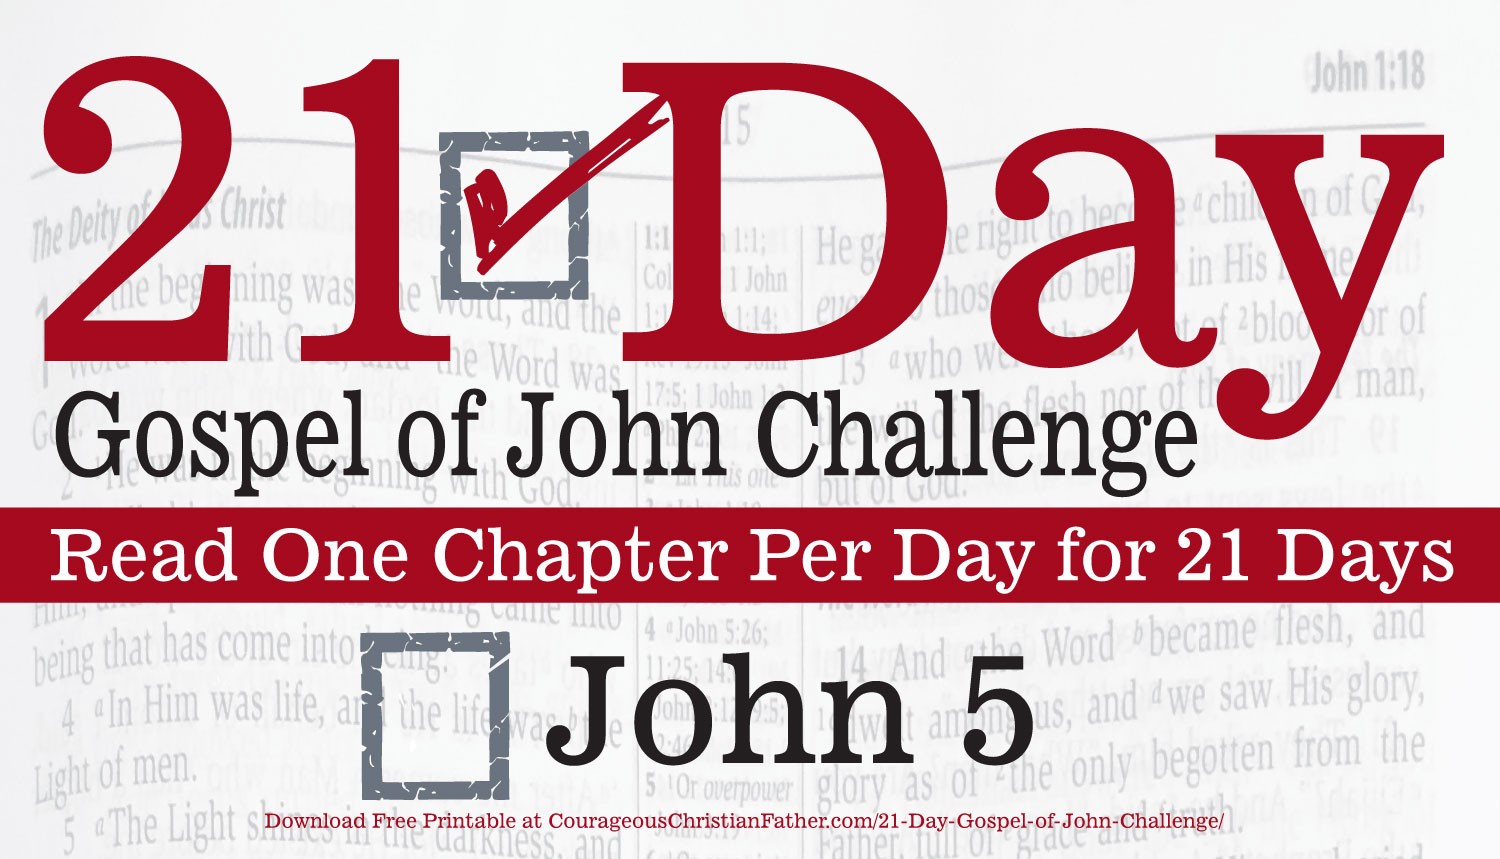 John 5 - It's day 5 of the 21 Day Gospel of John Challenge. Today you will need to read the 5th chapter of the Gospel of John. #John5